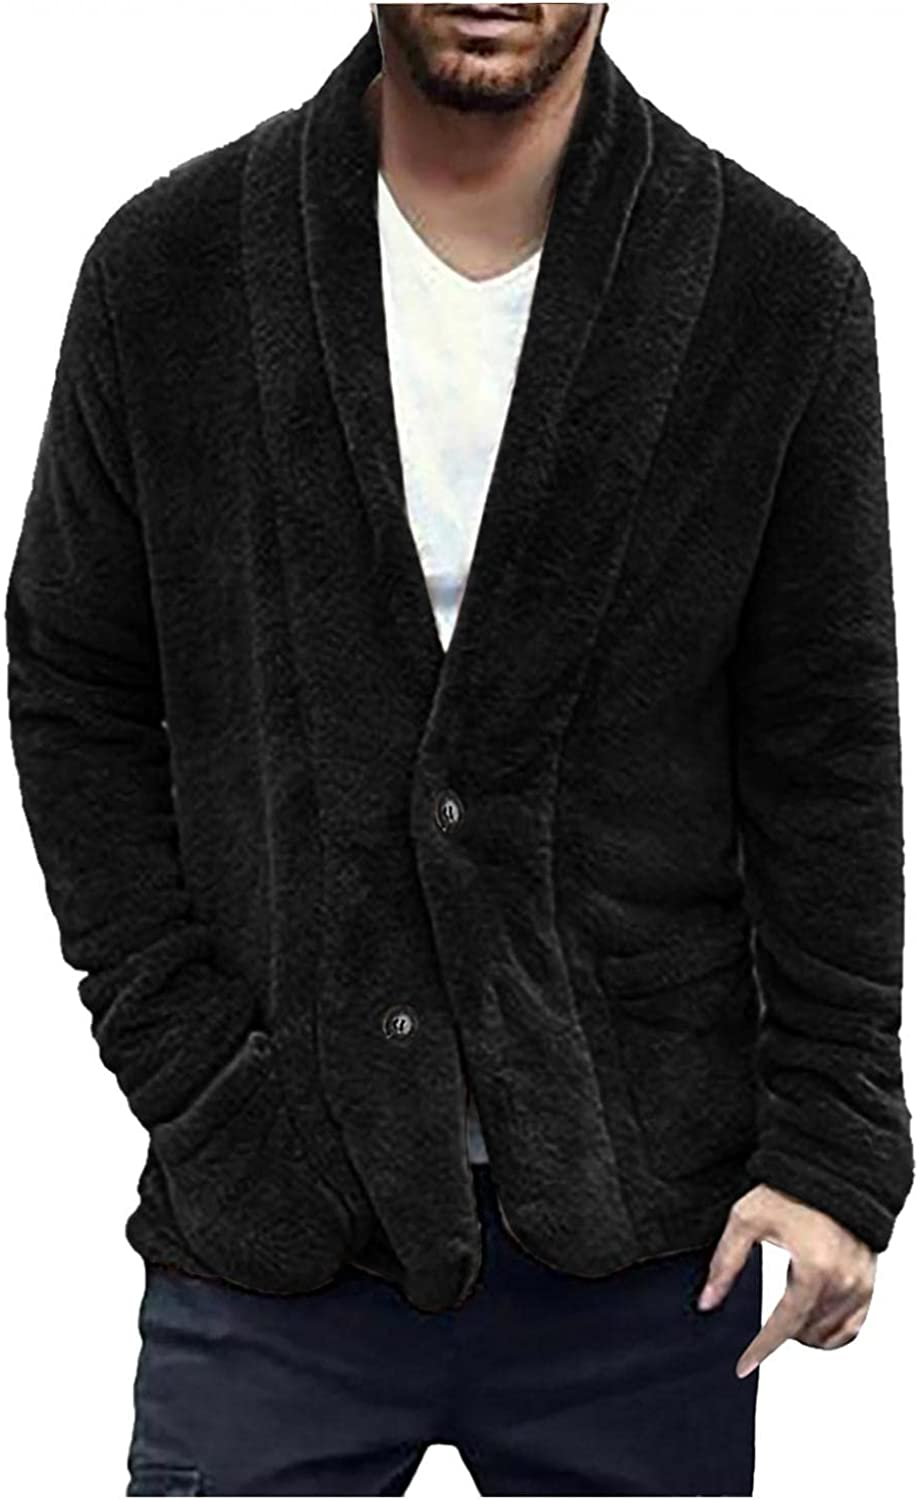 PHSHY Men's Fleece Fuzzy Sherpa Lined Jacket Coat Open Front Cardigans Winter Thermal Outwear Overcoats Big and Tall